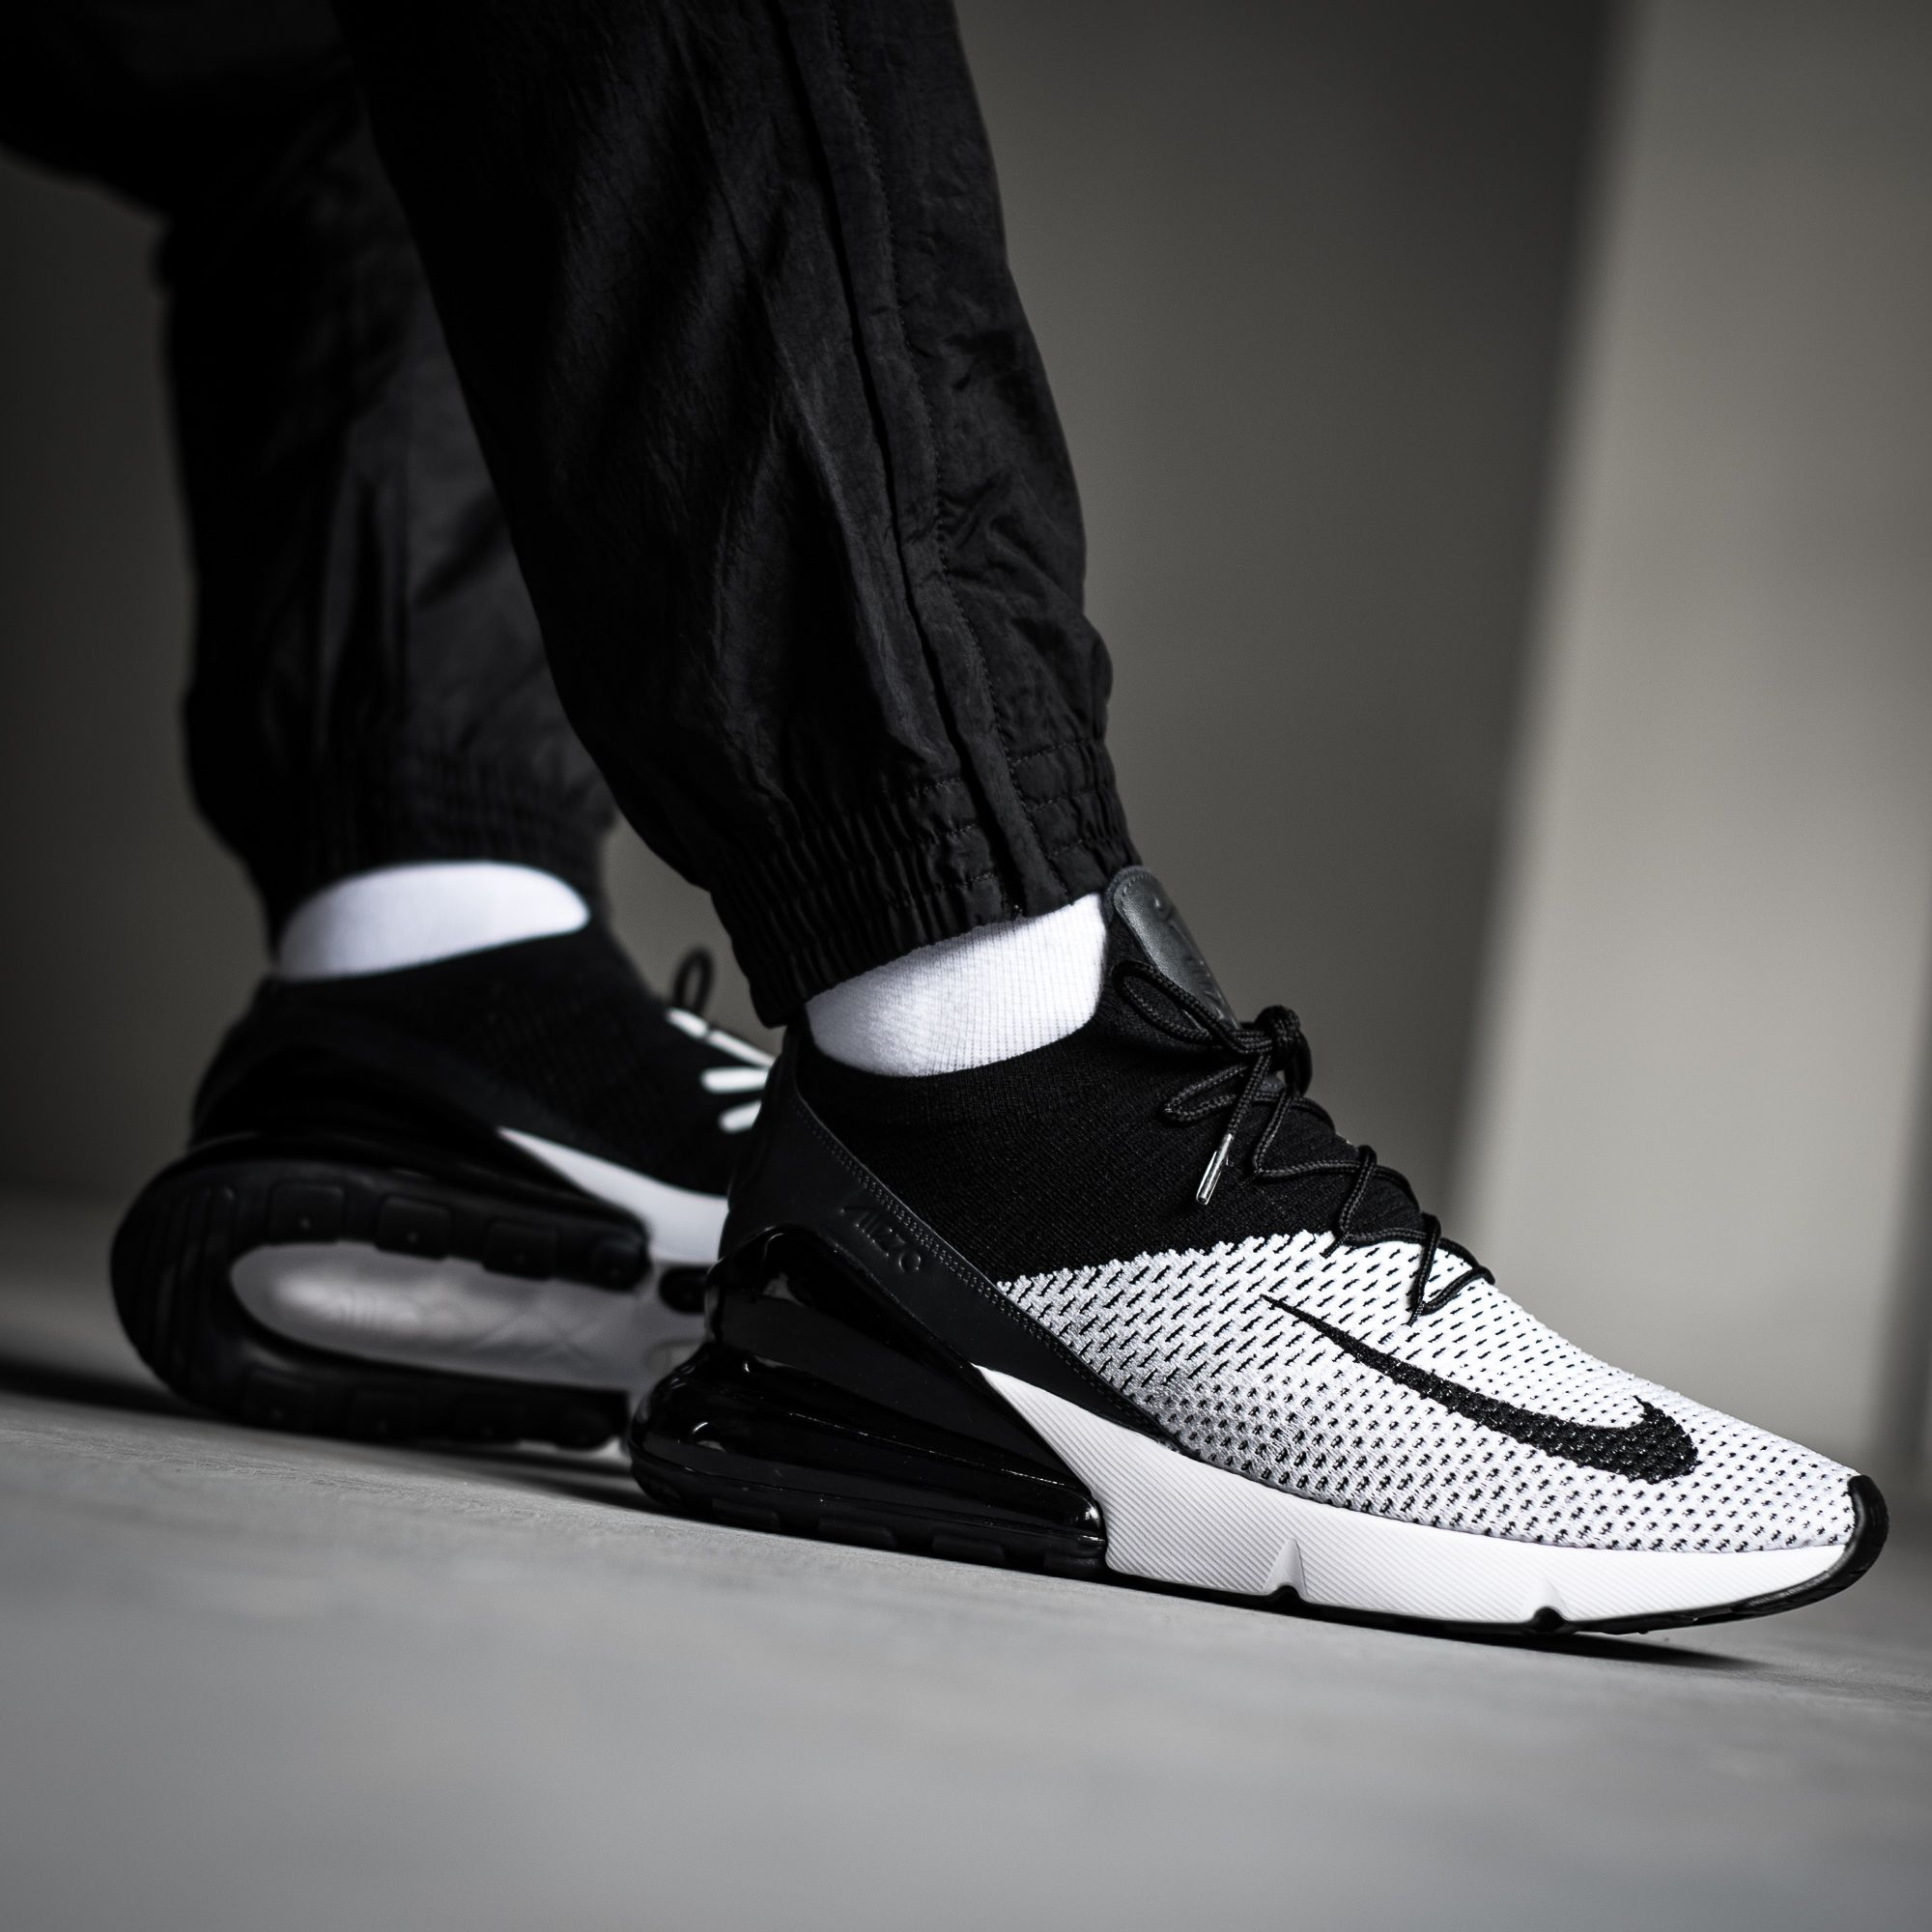 025fb1728e4 The brand-new NIKE AIR MAX 270 FLYKNIT in a white black-anthracite  colorway! Get yours on kickz.com!